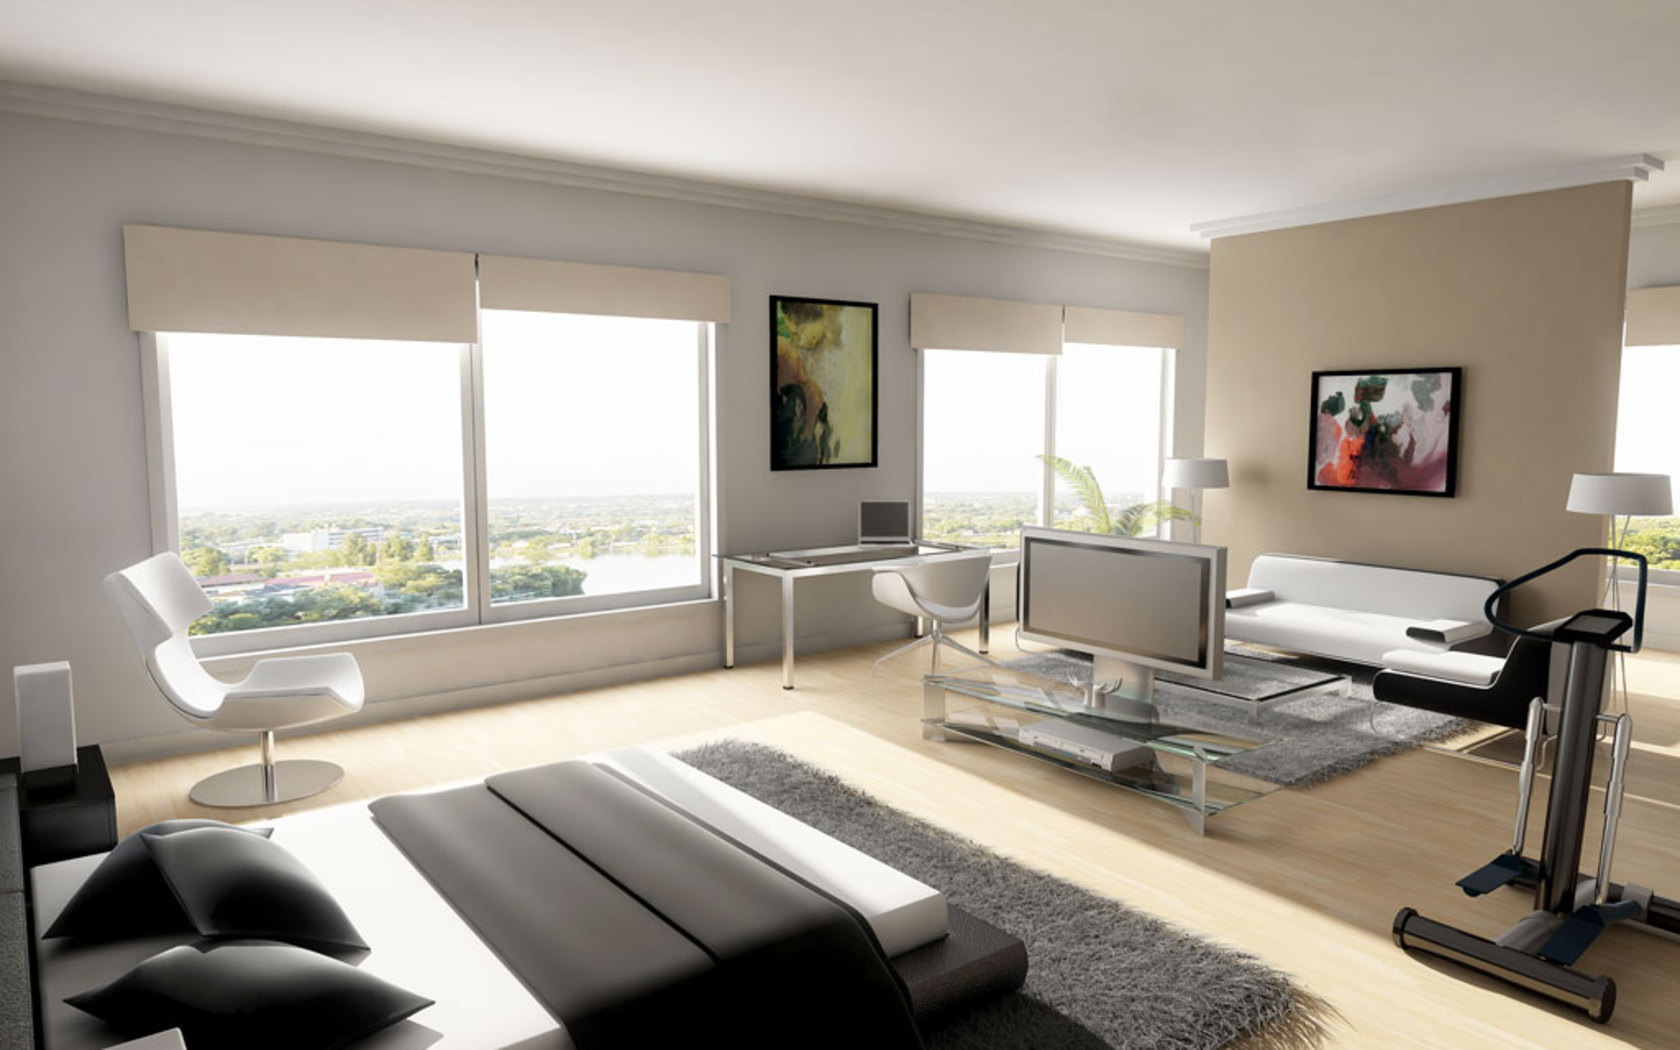 New home interior hd wallpapers